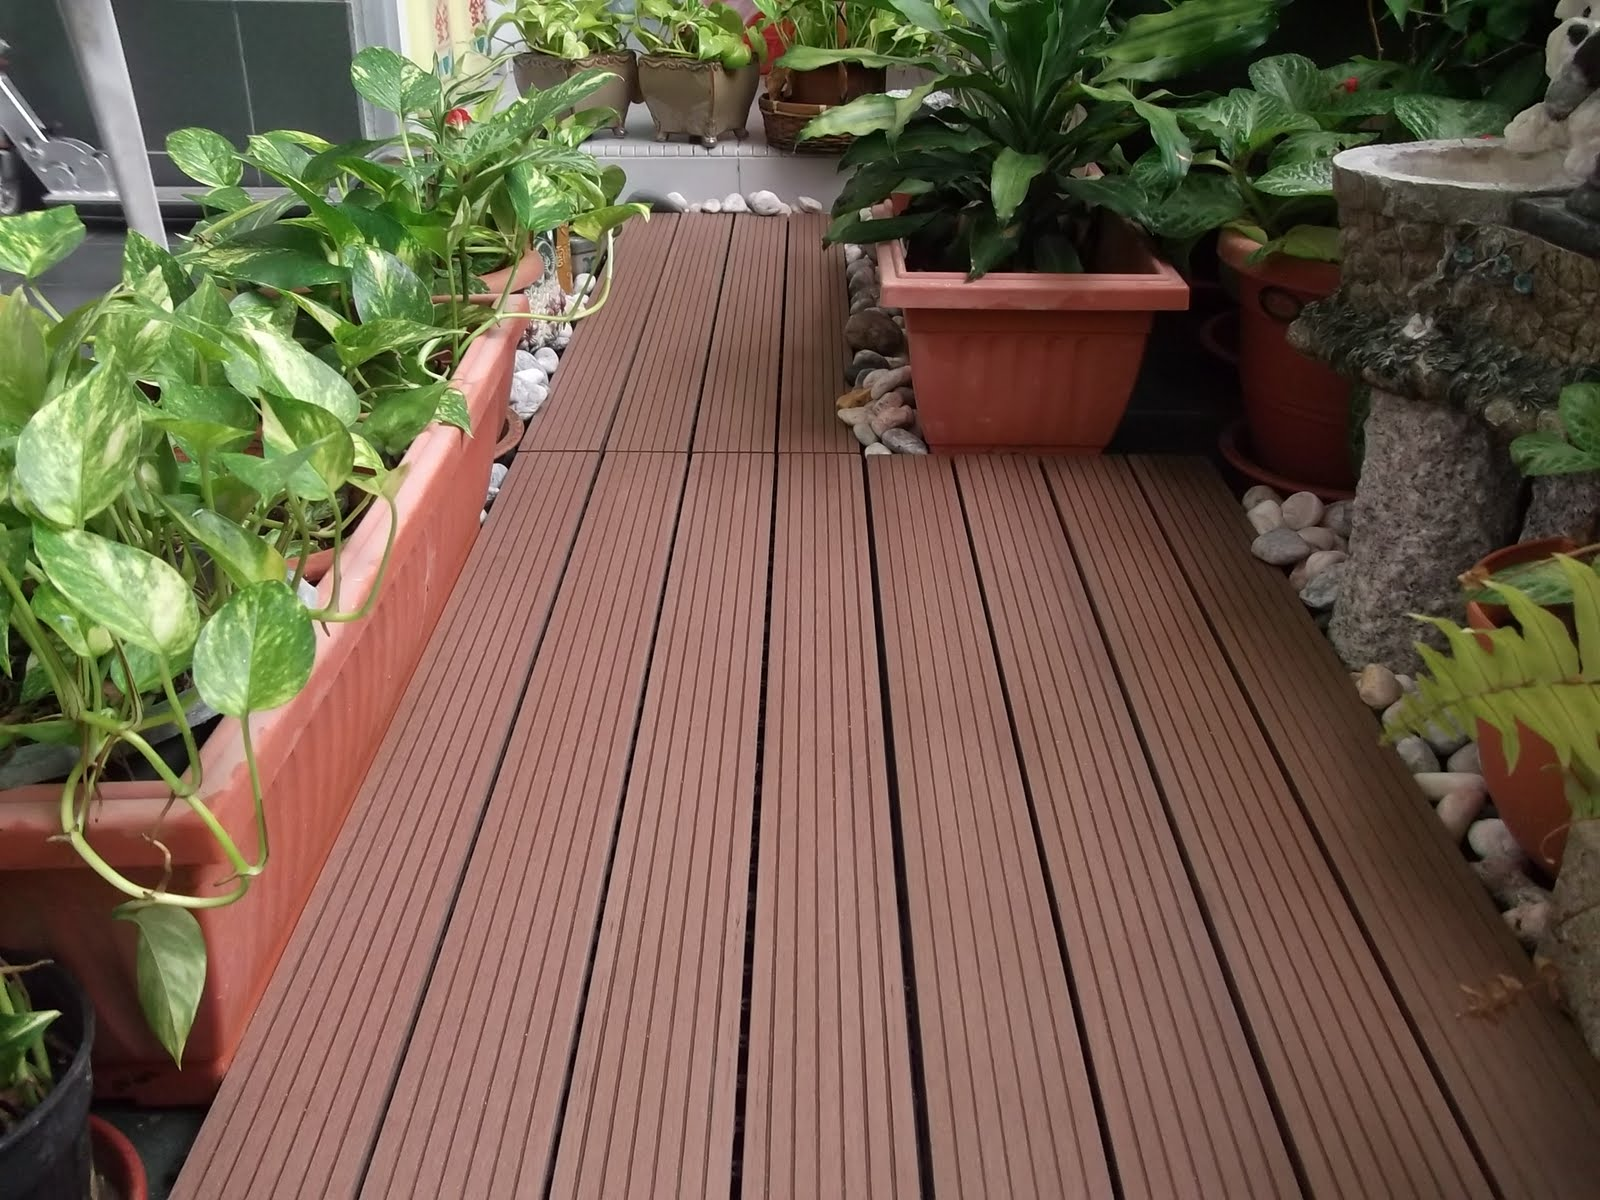 Planter Decks, Patio Decks, Balcony Decks, Diy Decks, Garden Decks